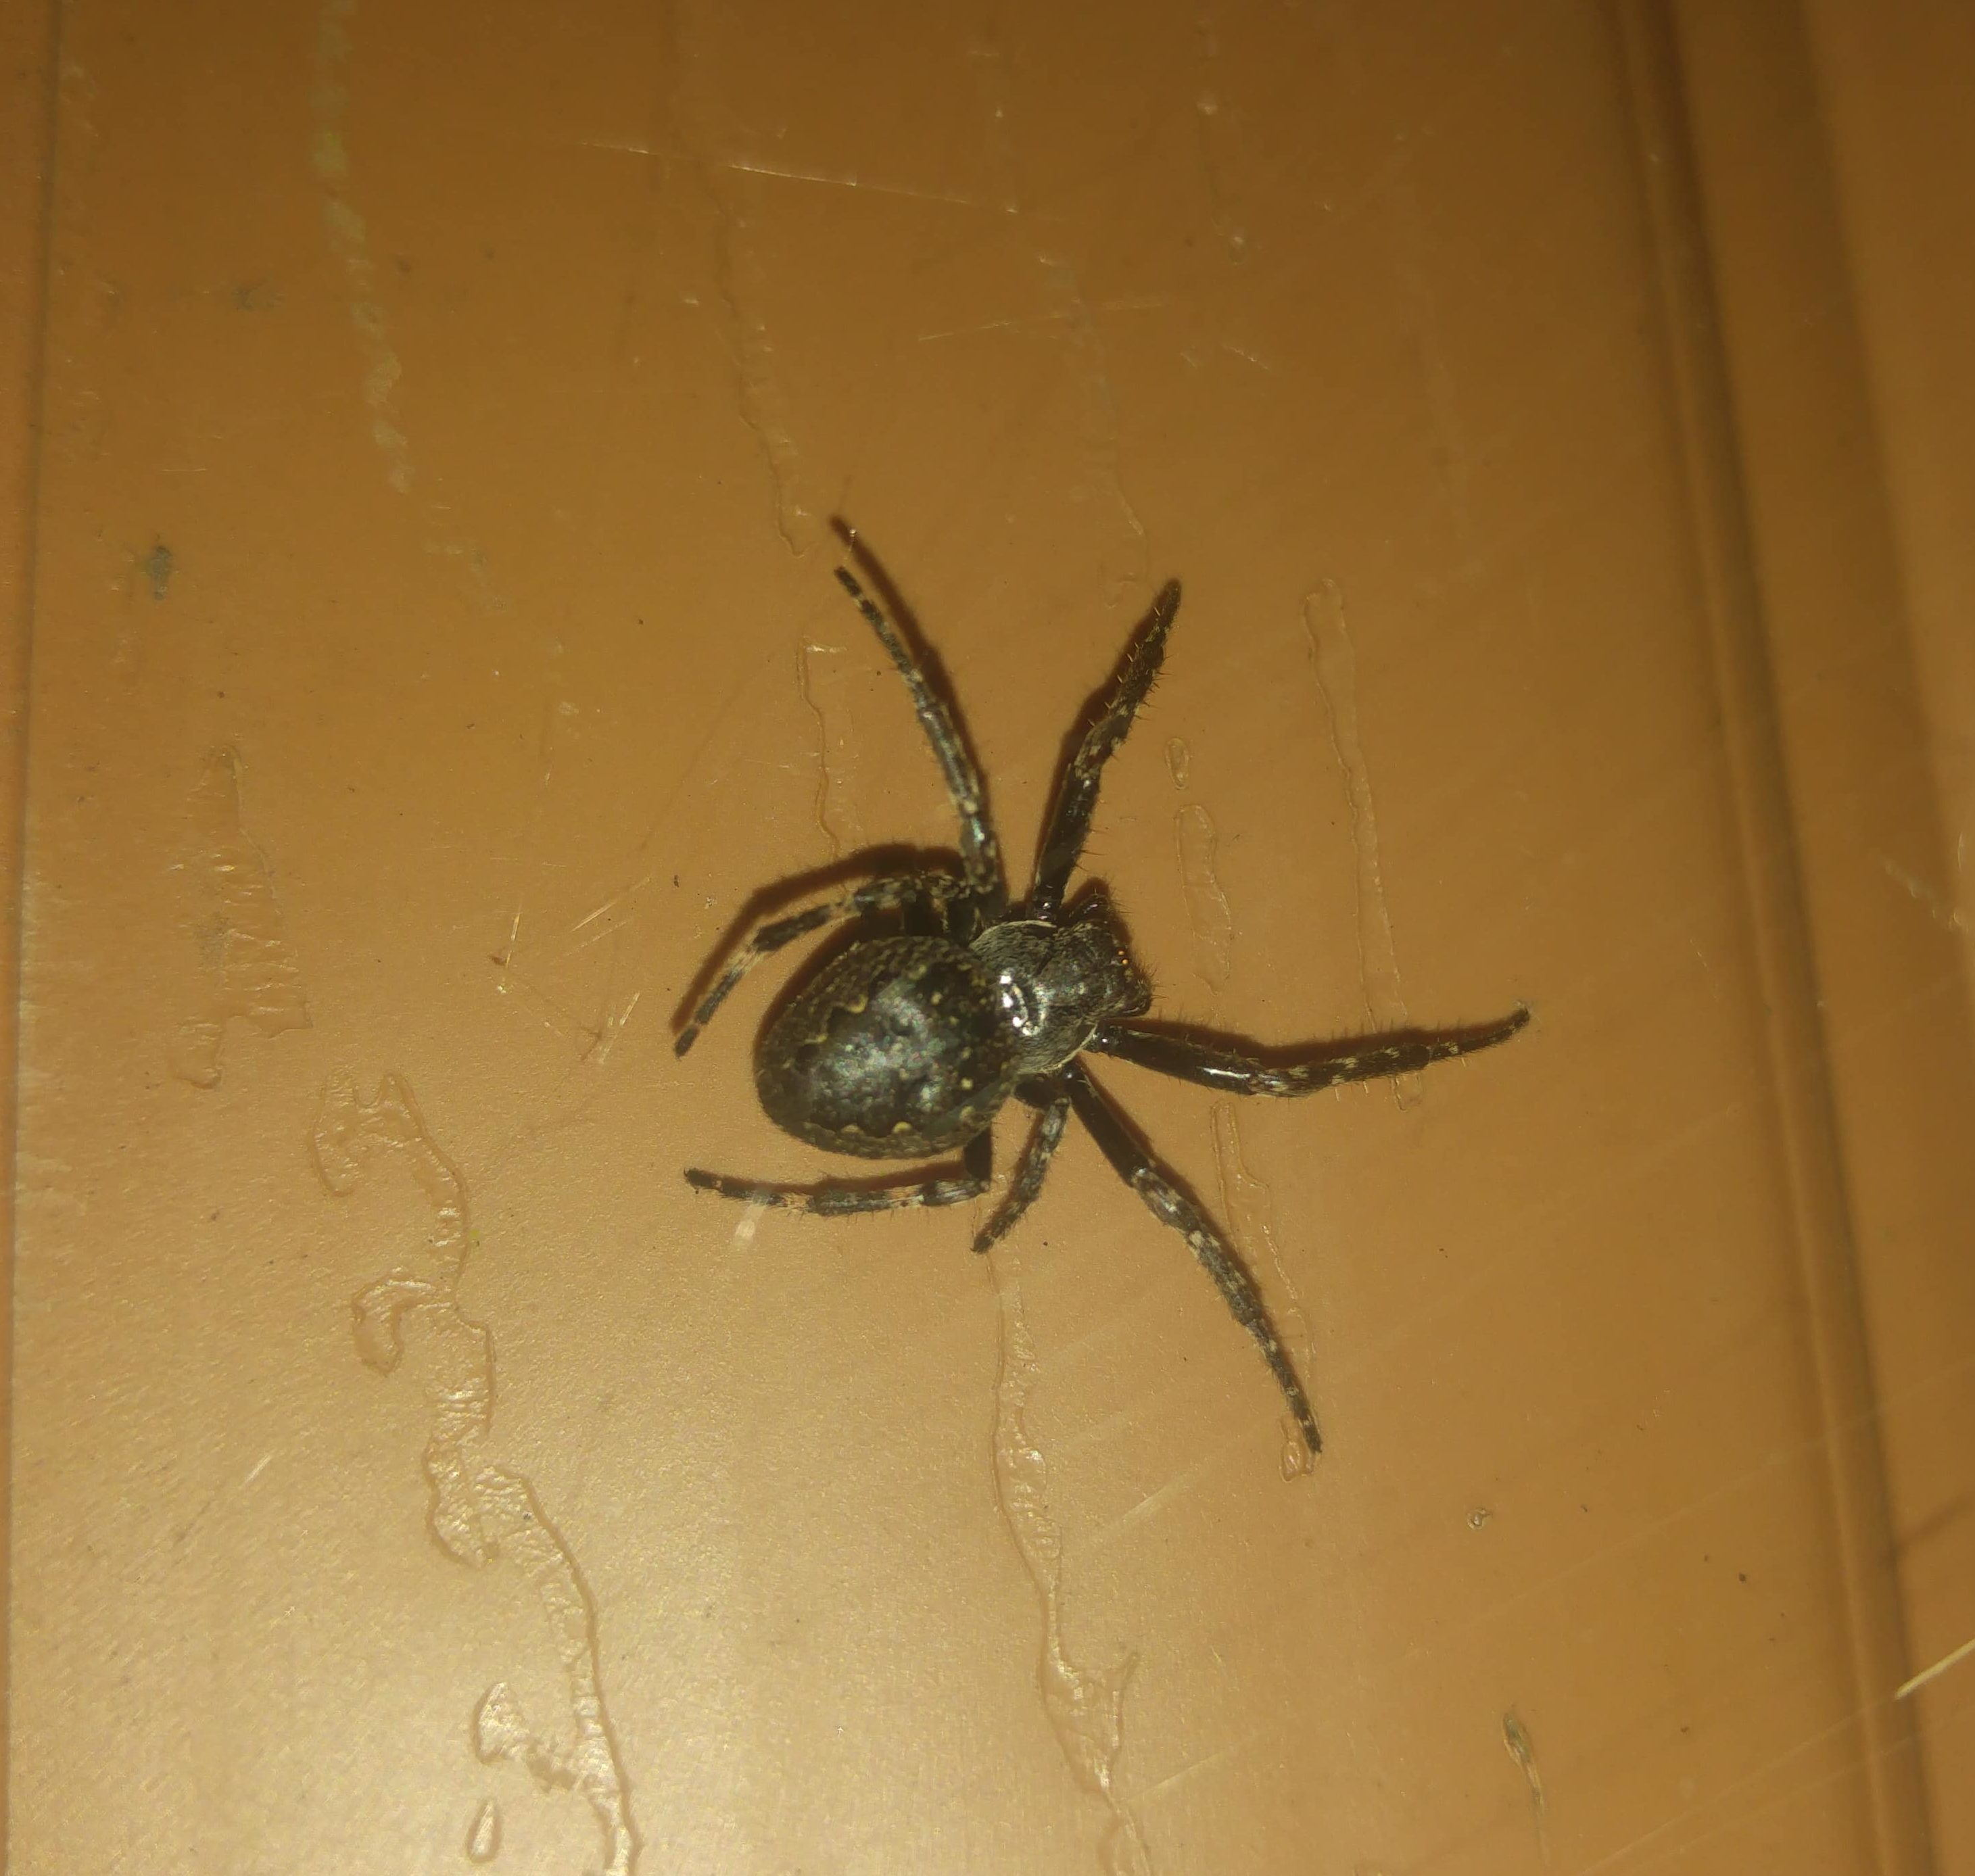 Picture of Nuctenea umbratica (Walnut Orb-weaver) - Dorsal